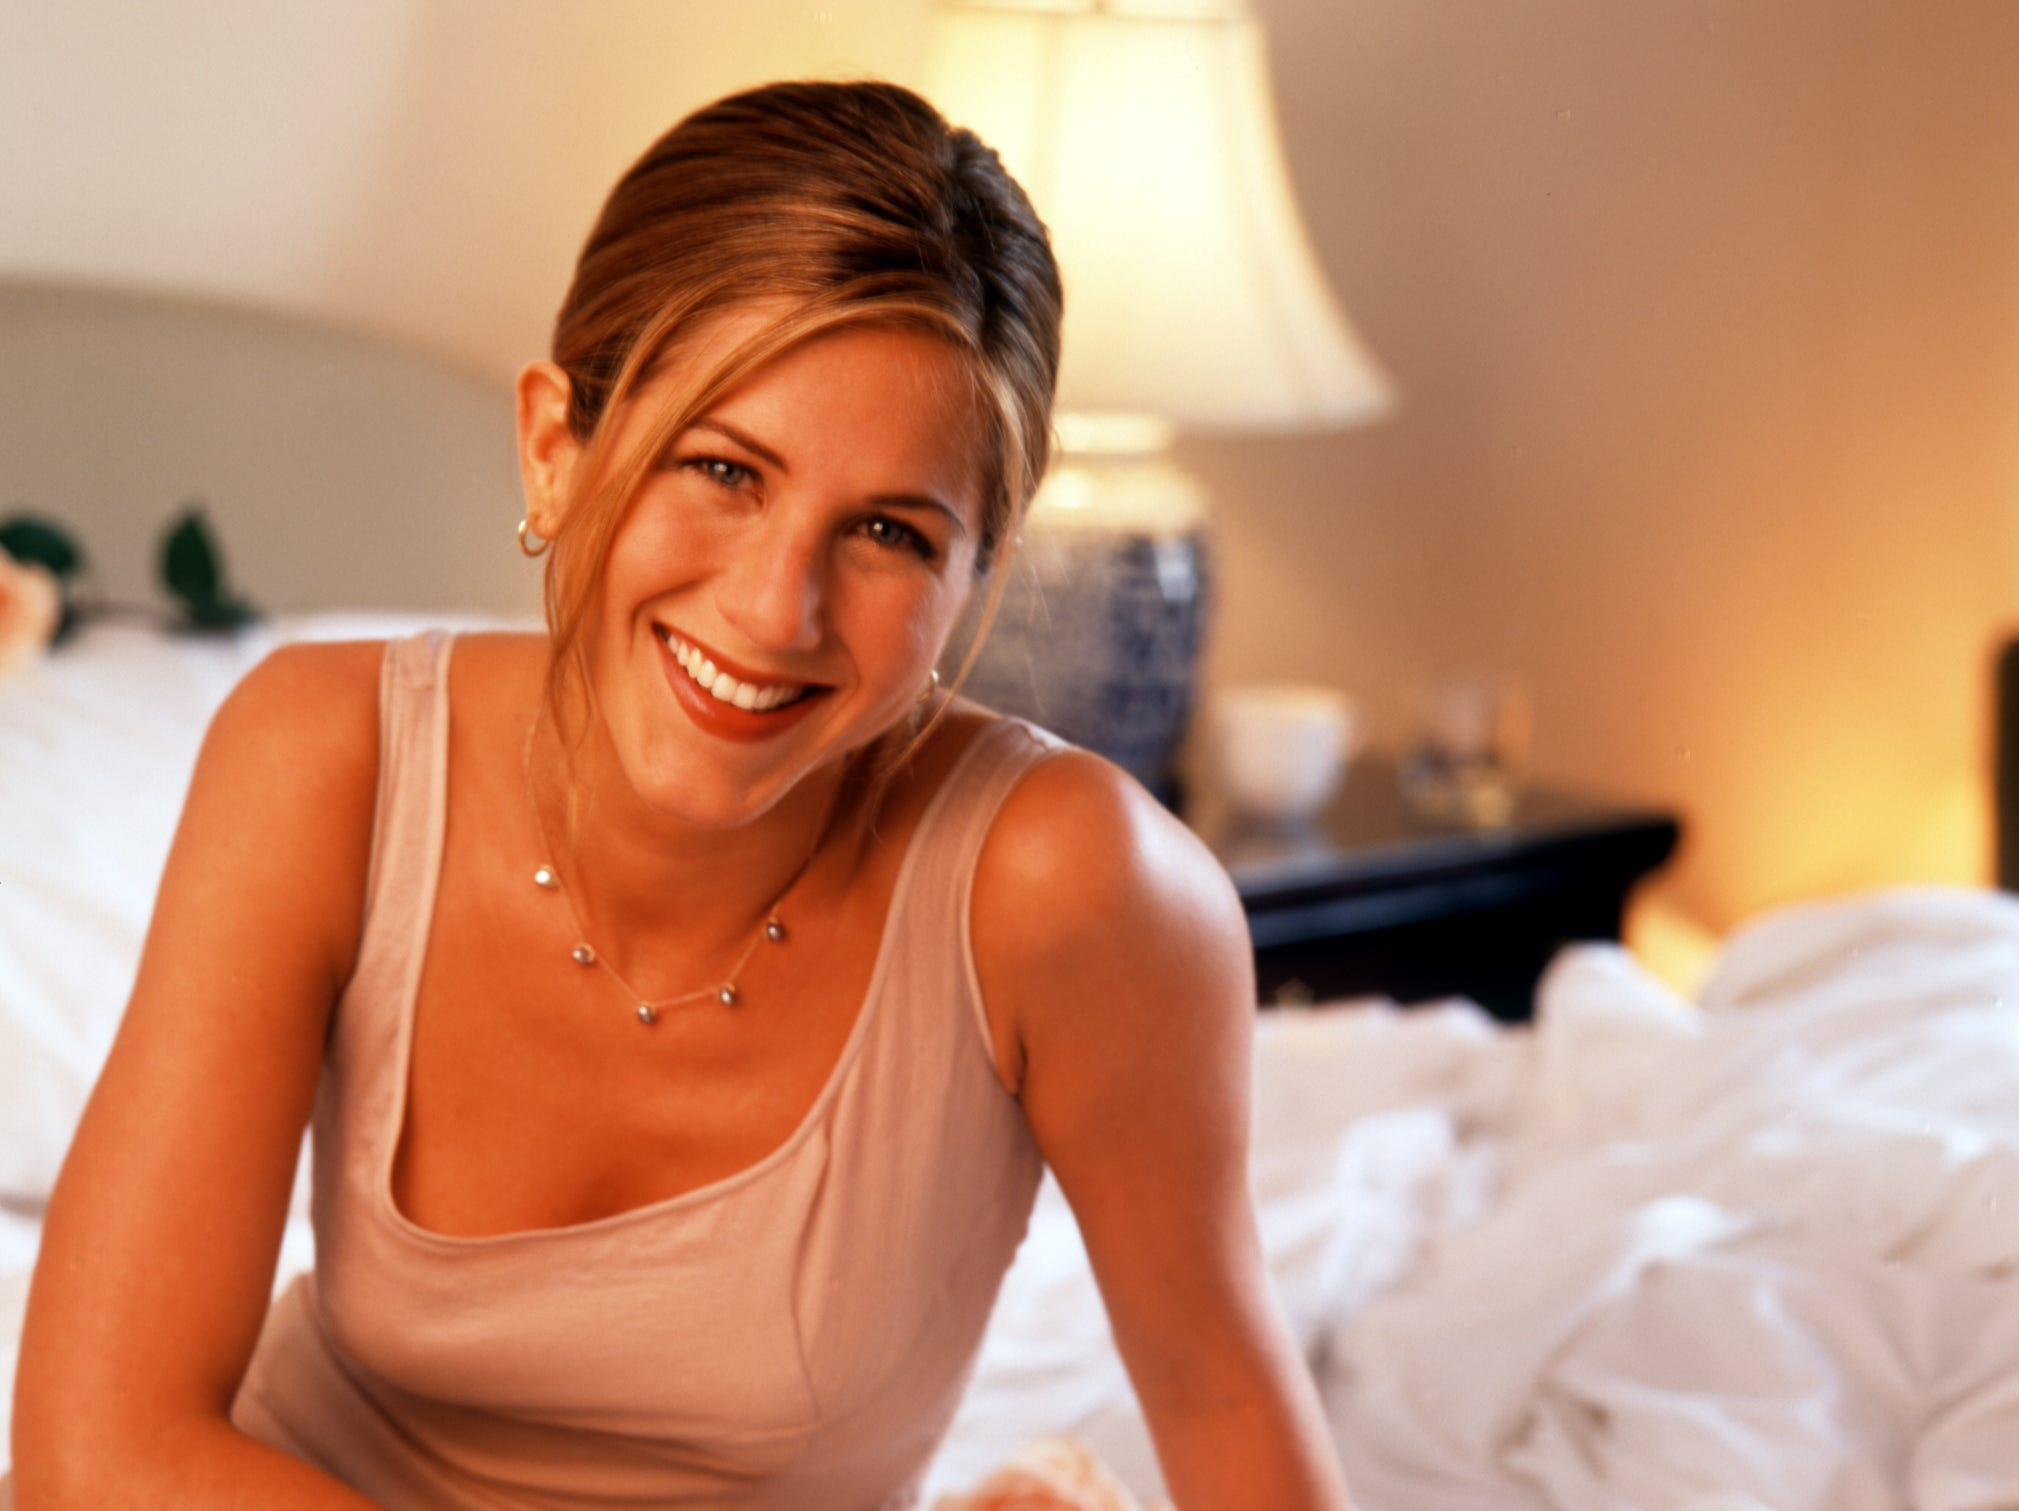 """In July 1996, she posed for USA TODAY while promoting her romantic comedy """"Picture Perfect,"""" which was released the following year."""